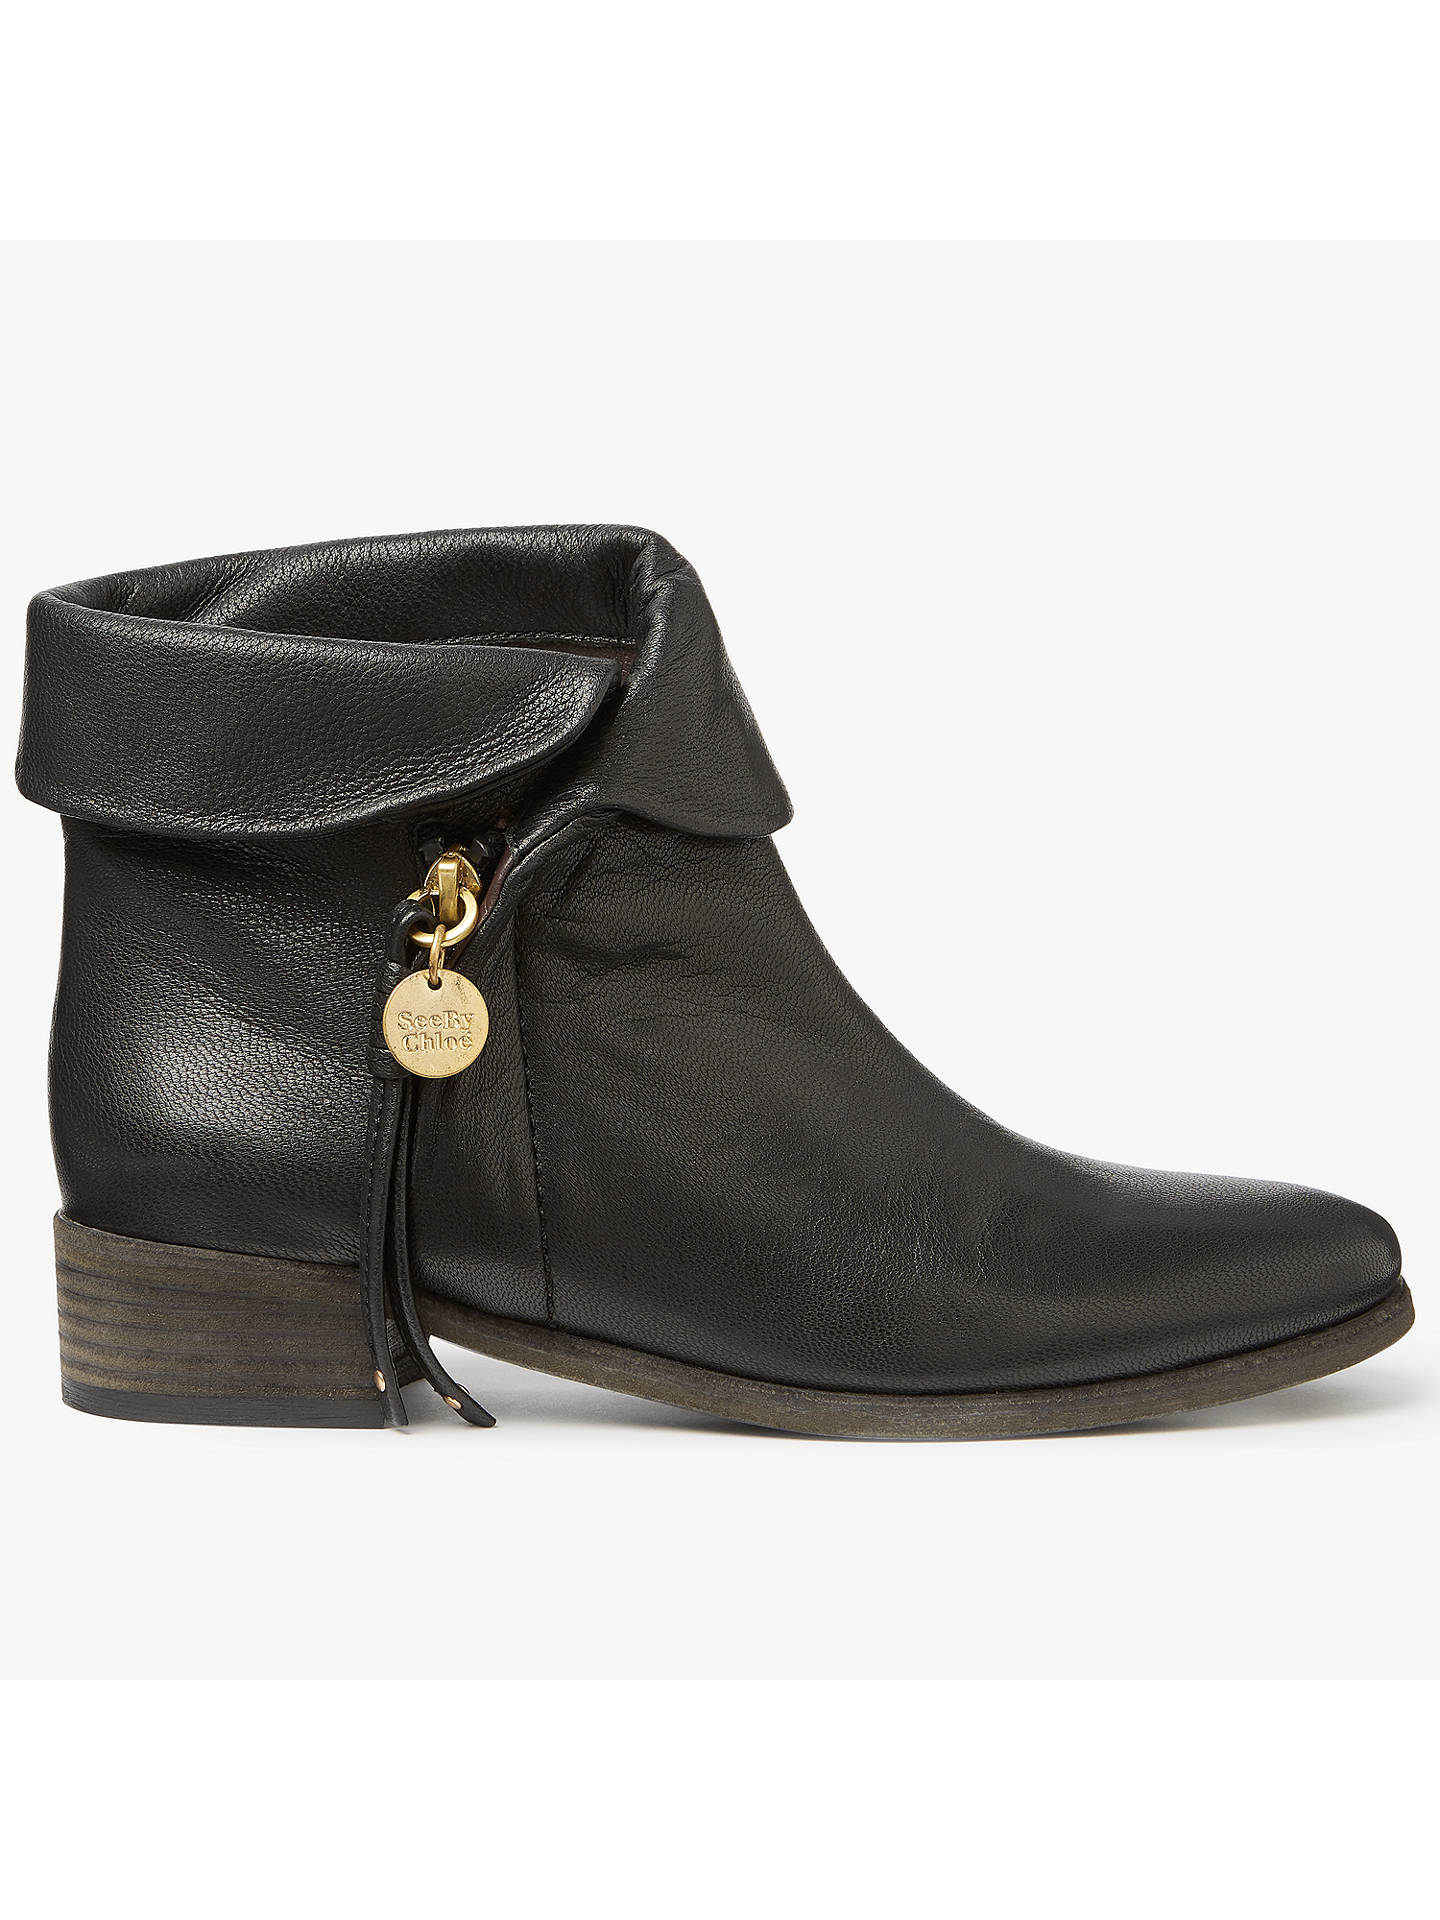 6191fb609f3 See by Chloé Masha Lapel Ankle Boots, Black at John Lewis & Partners